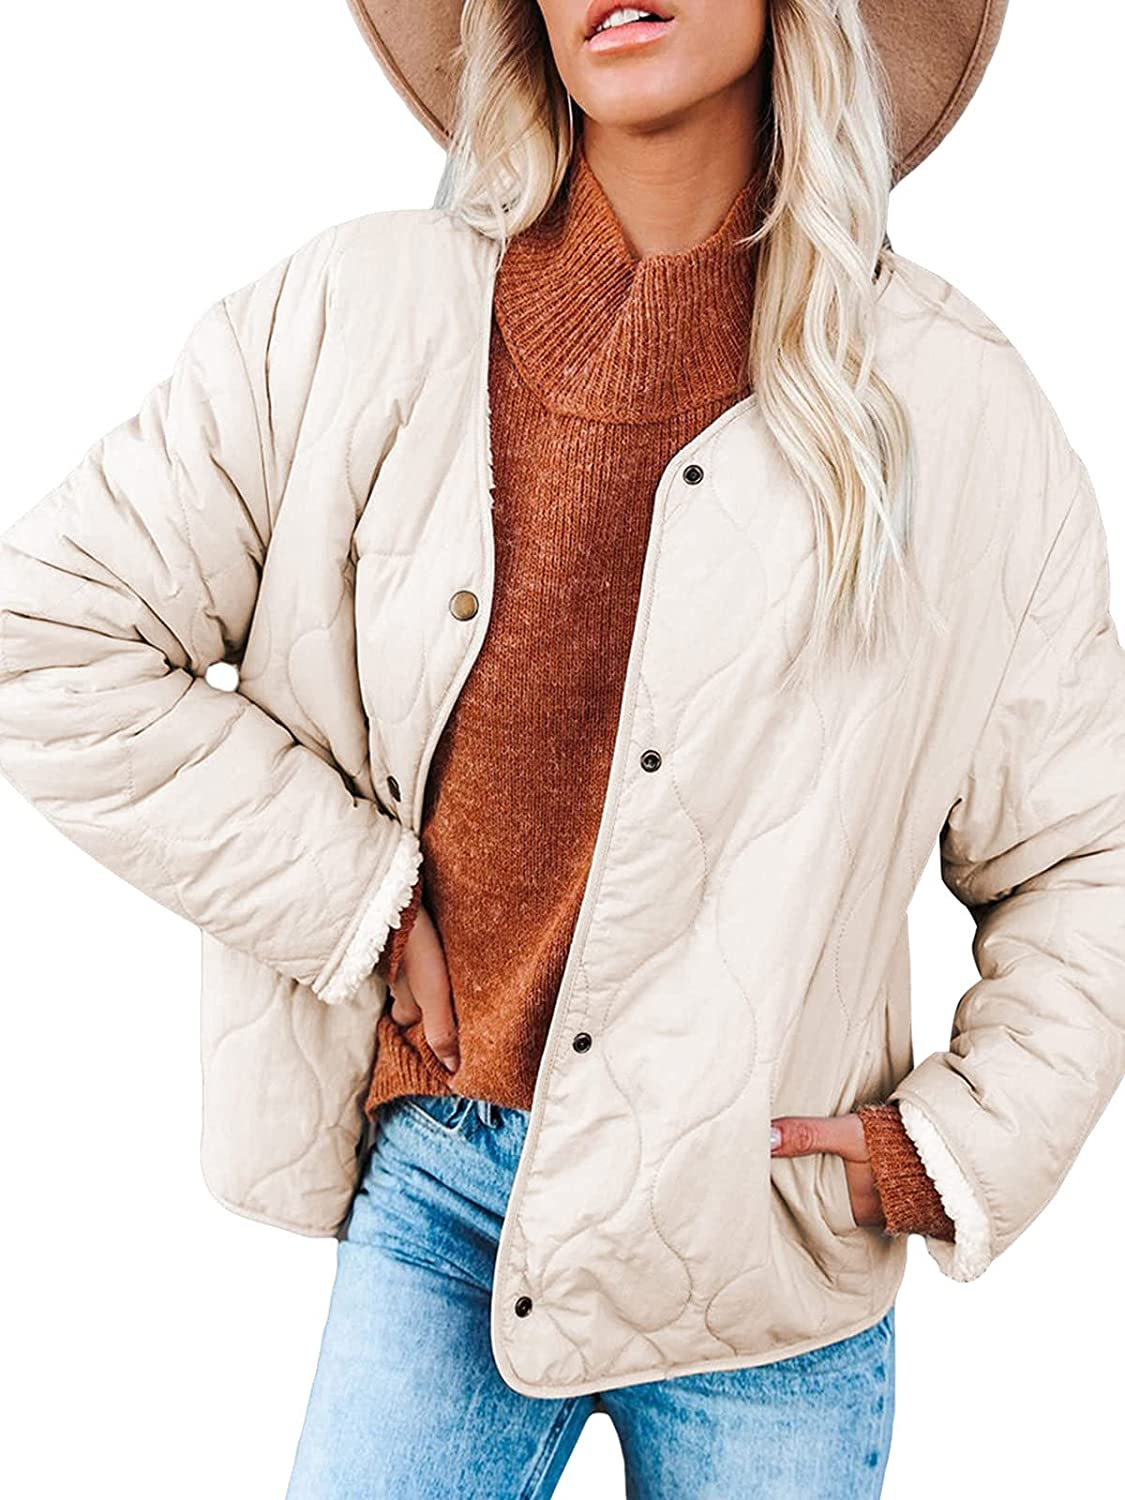 SHIBEVER Women's Winter Long Sleeve Quilted Light Weight Jacket Button Down Warm Coat Outerwear with Pockets